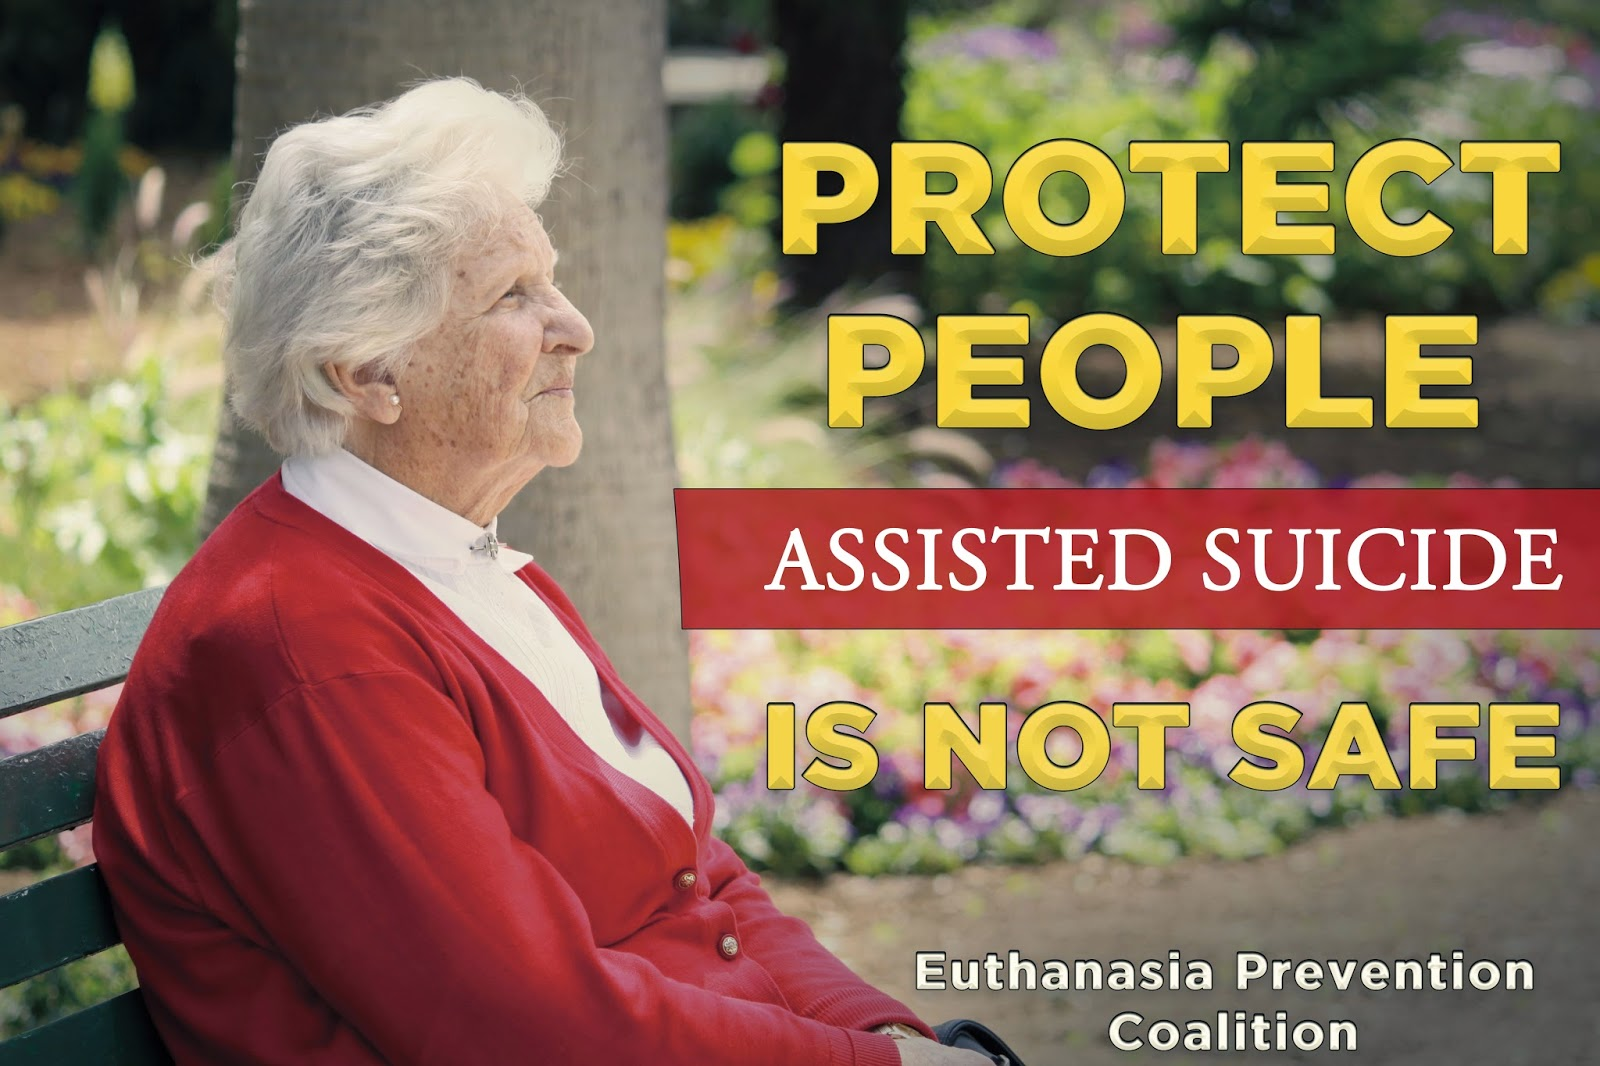 a study on assisted suicide or euthanasia The subject matter concerned attitudes towards euthanasia and physician-assisted suicide (pas), the authors of the papers sent questionnaires out to a number of currently practicing doctors and analysed the results using data analysis methods.